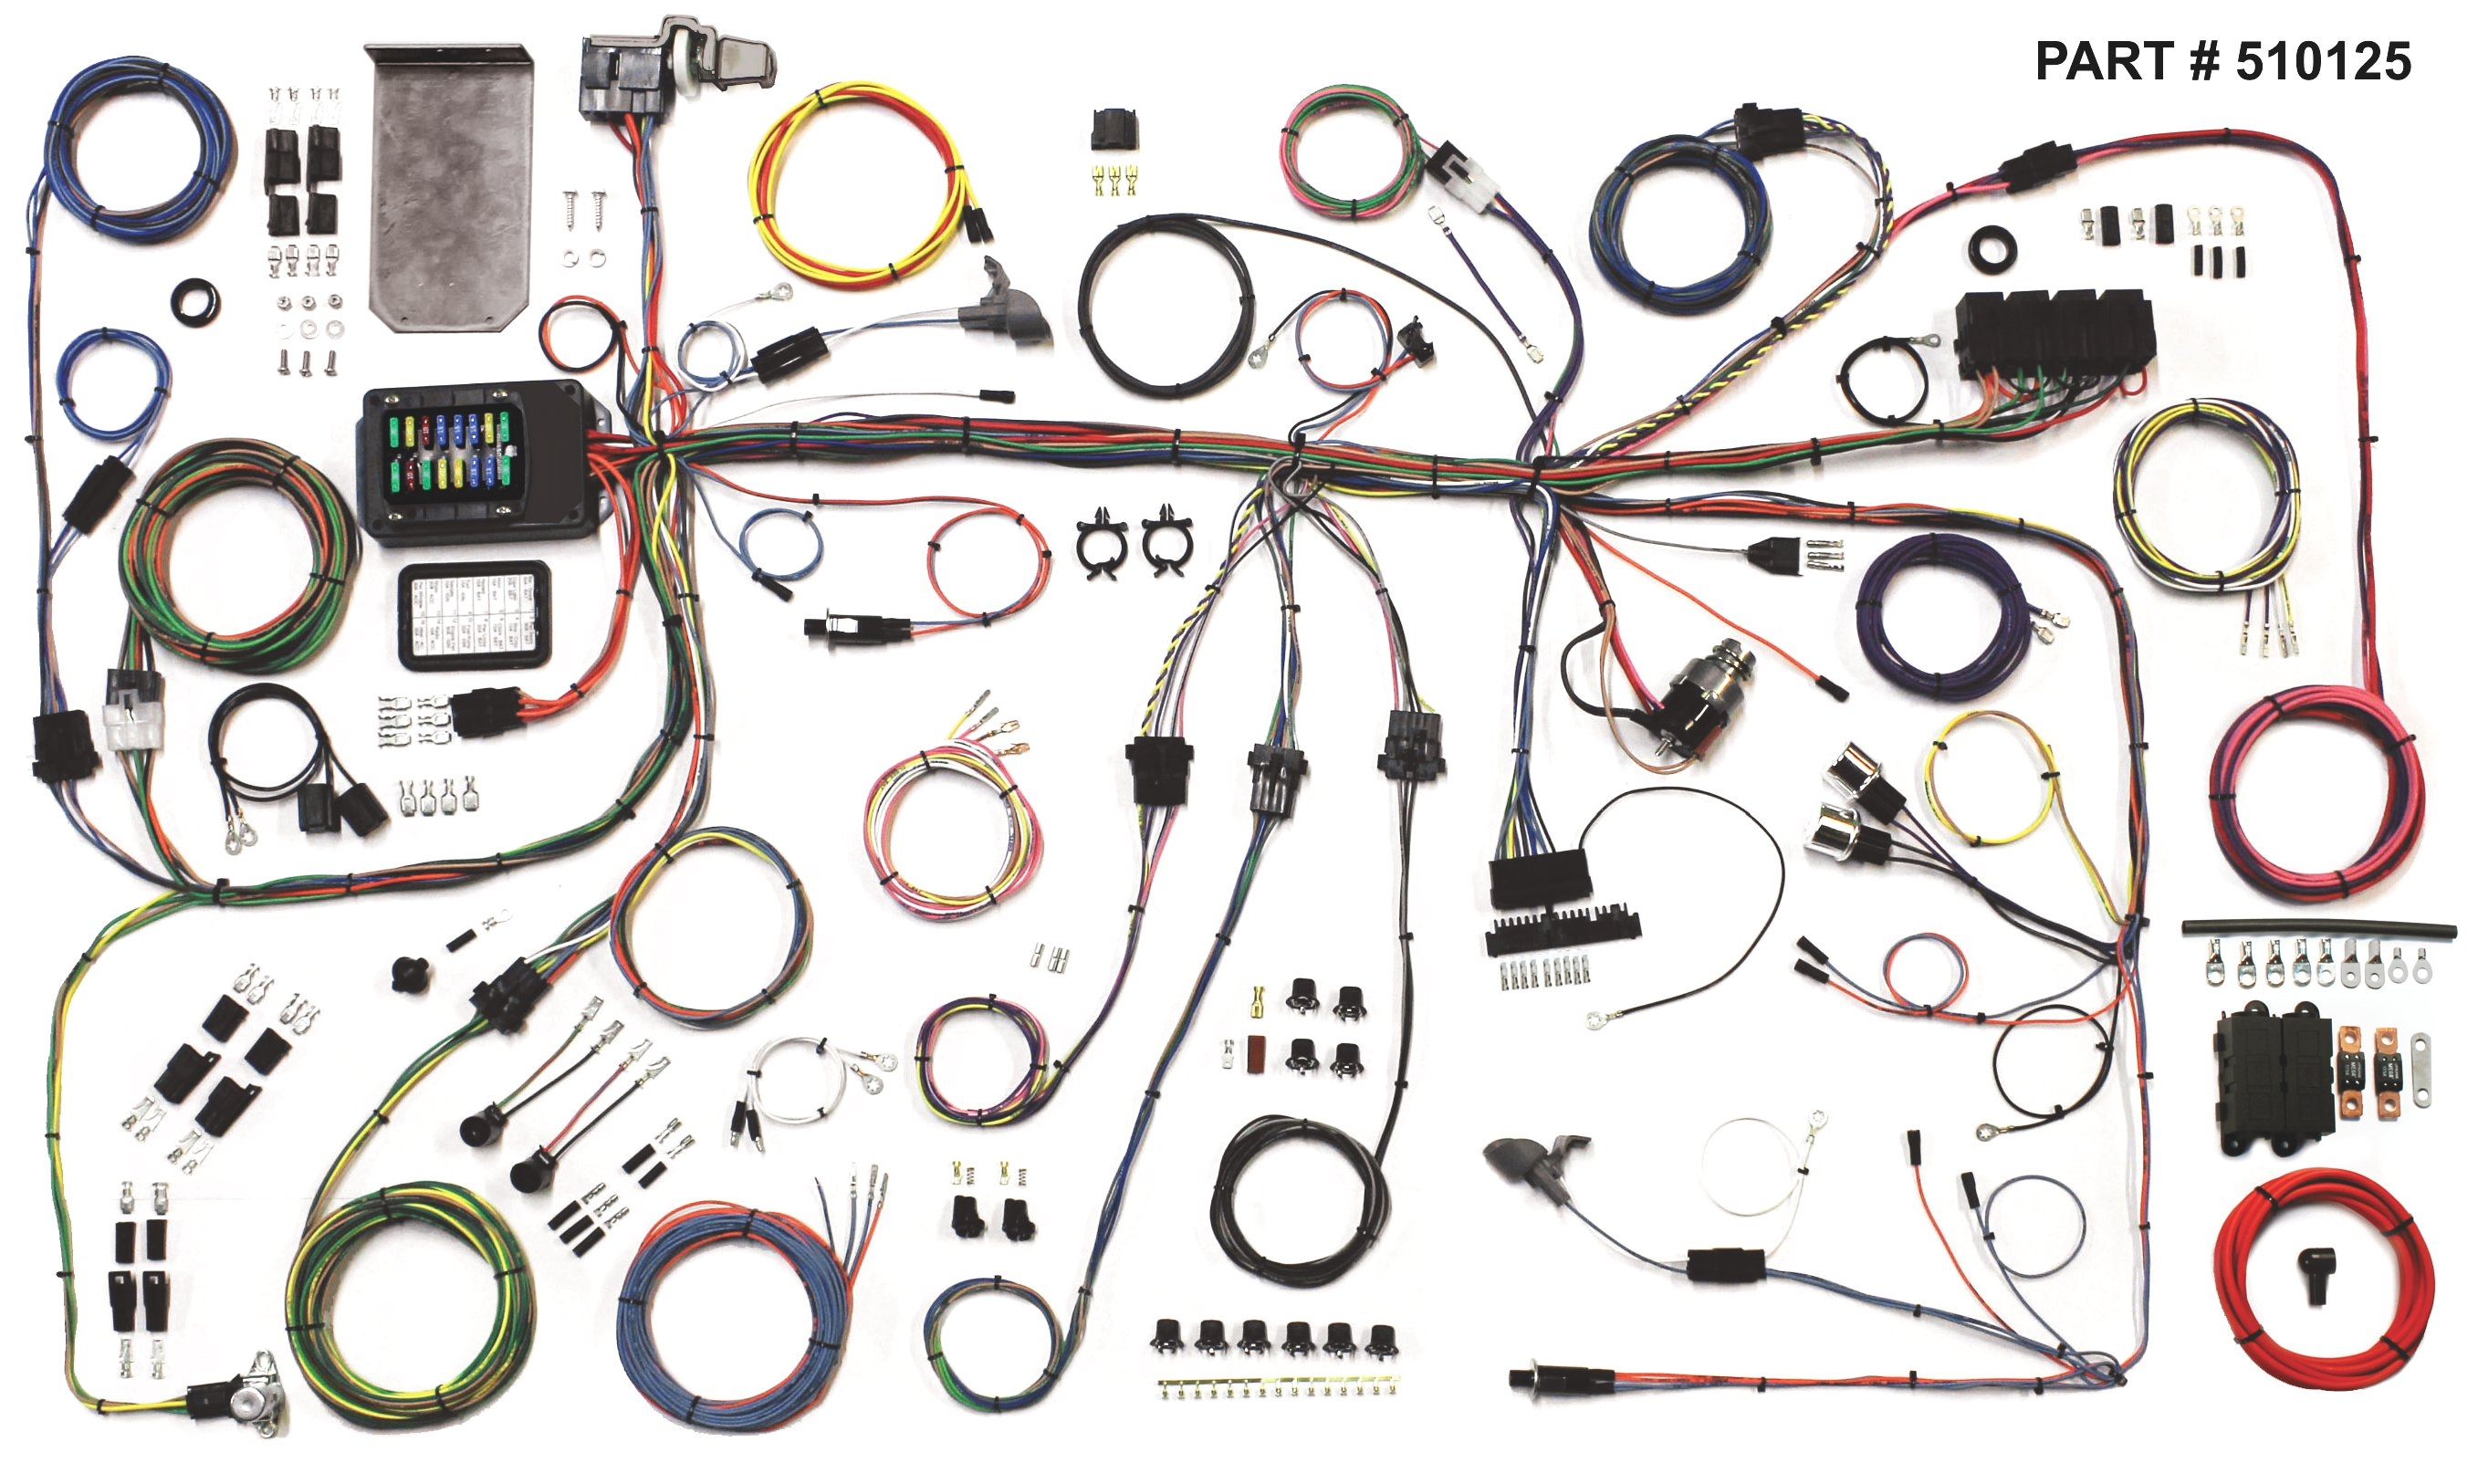 1966 Mustang Wiring Harness Diagrams Schematic 1964 Malibu Diagram Ford Restomod System 1972 66